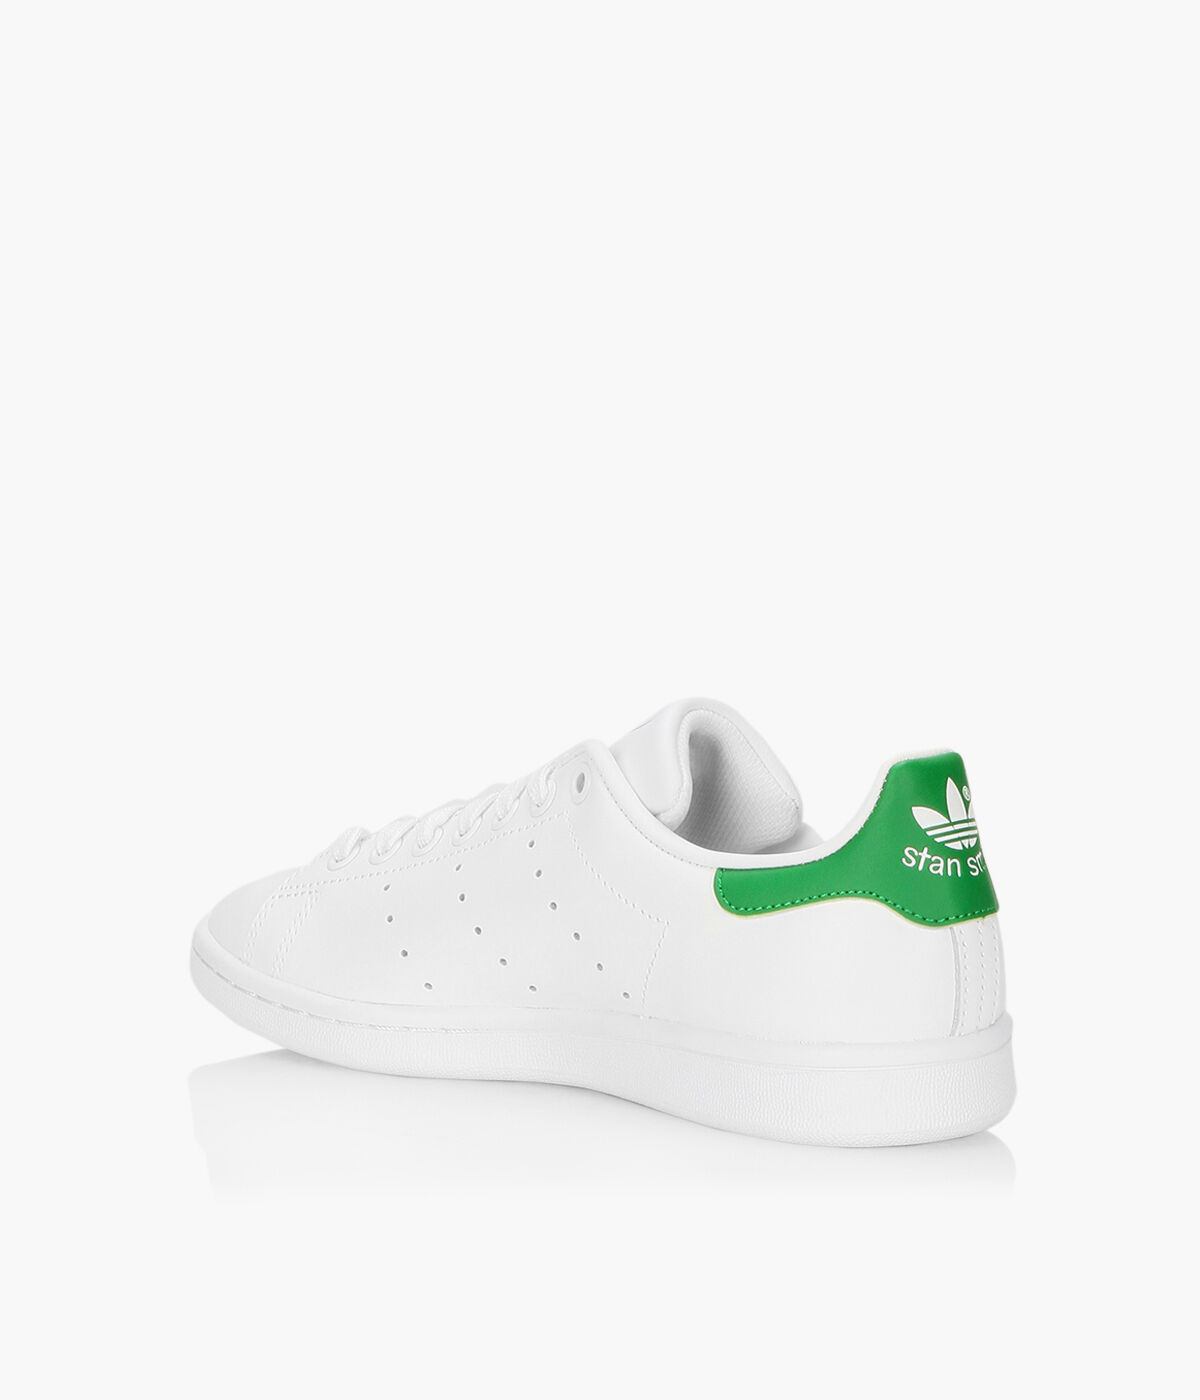 ADIDAS STAN SMITH - White | Browns Shoes